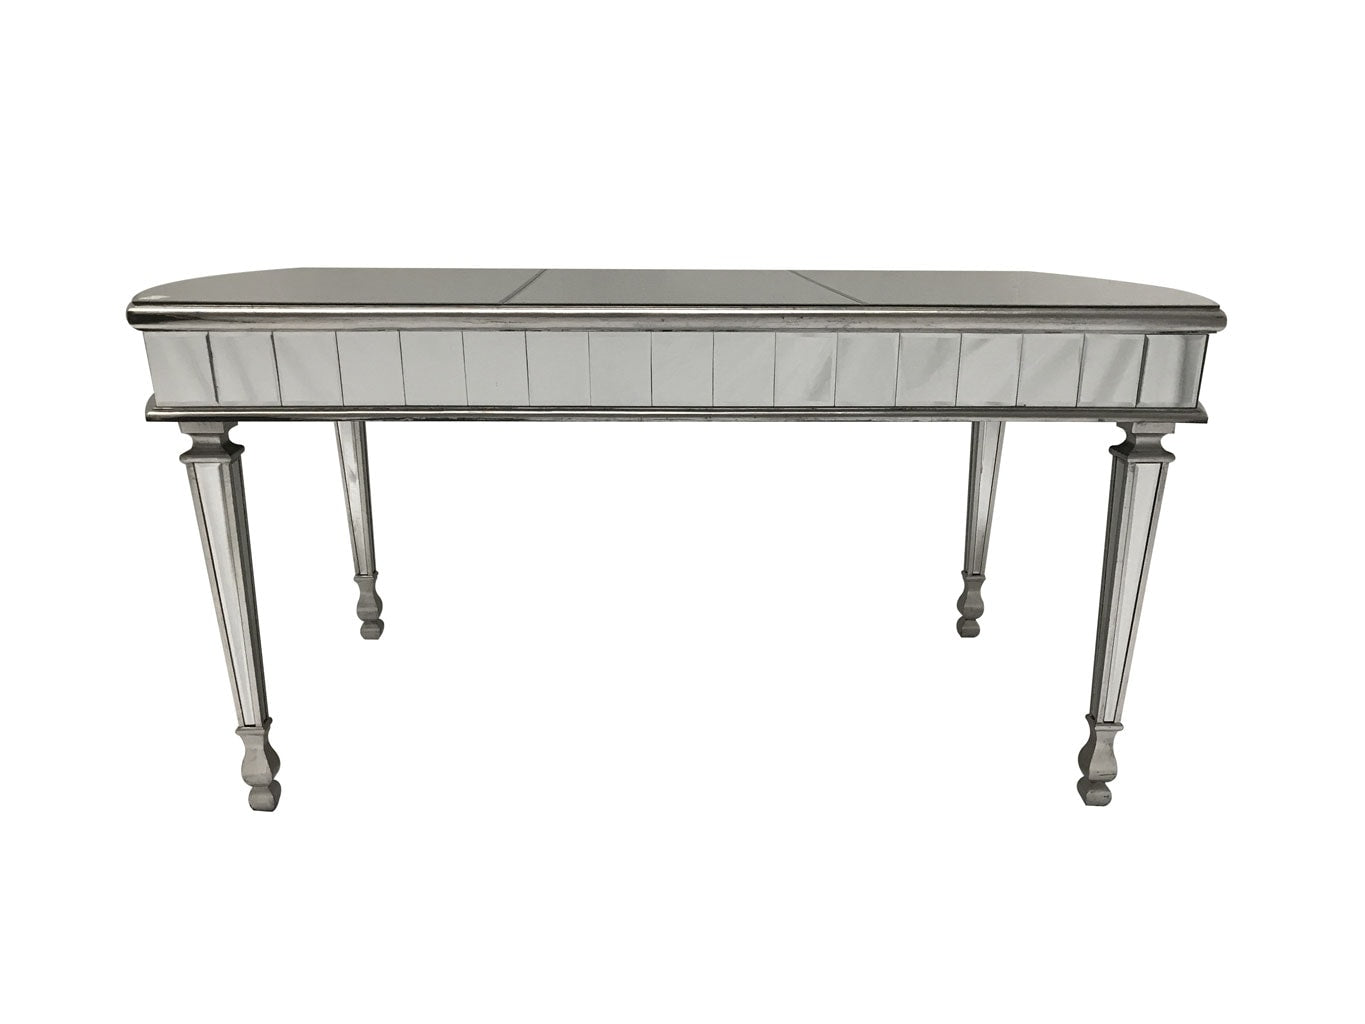 Mirrored Dining Table with Rounded Ends on shorter sides in Antiqued Silver Finish